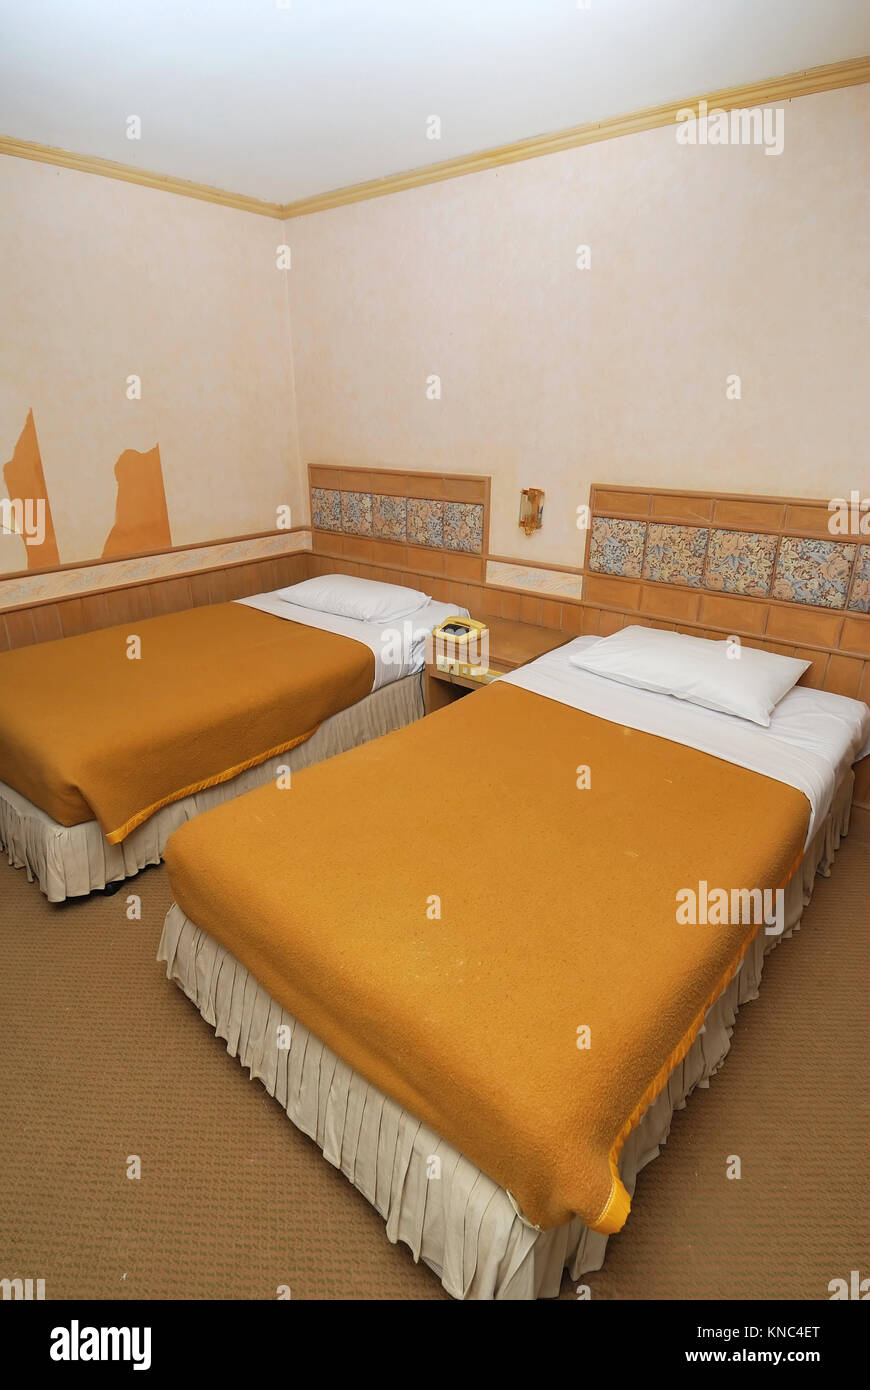 Picture of: Twin Beds Neatly Done Up In A High Class Hotel Room Suitable For Stock Photo Alamy